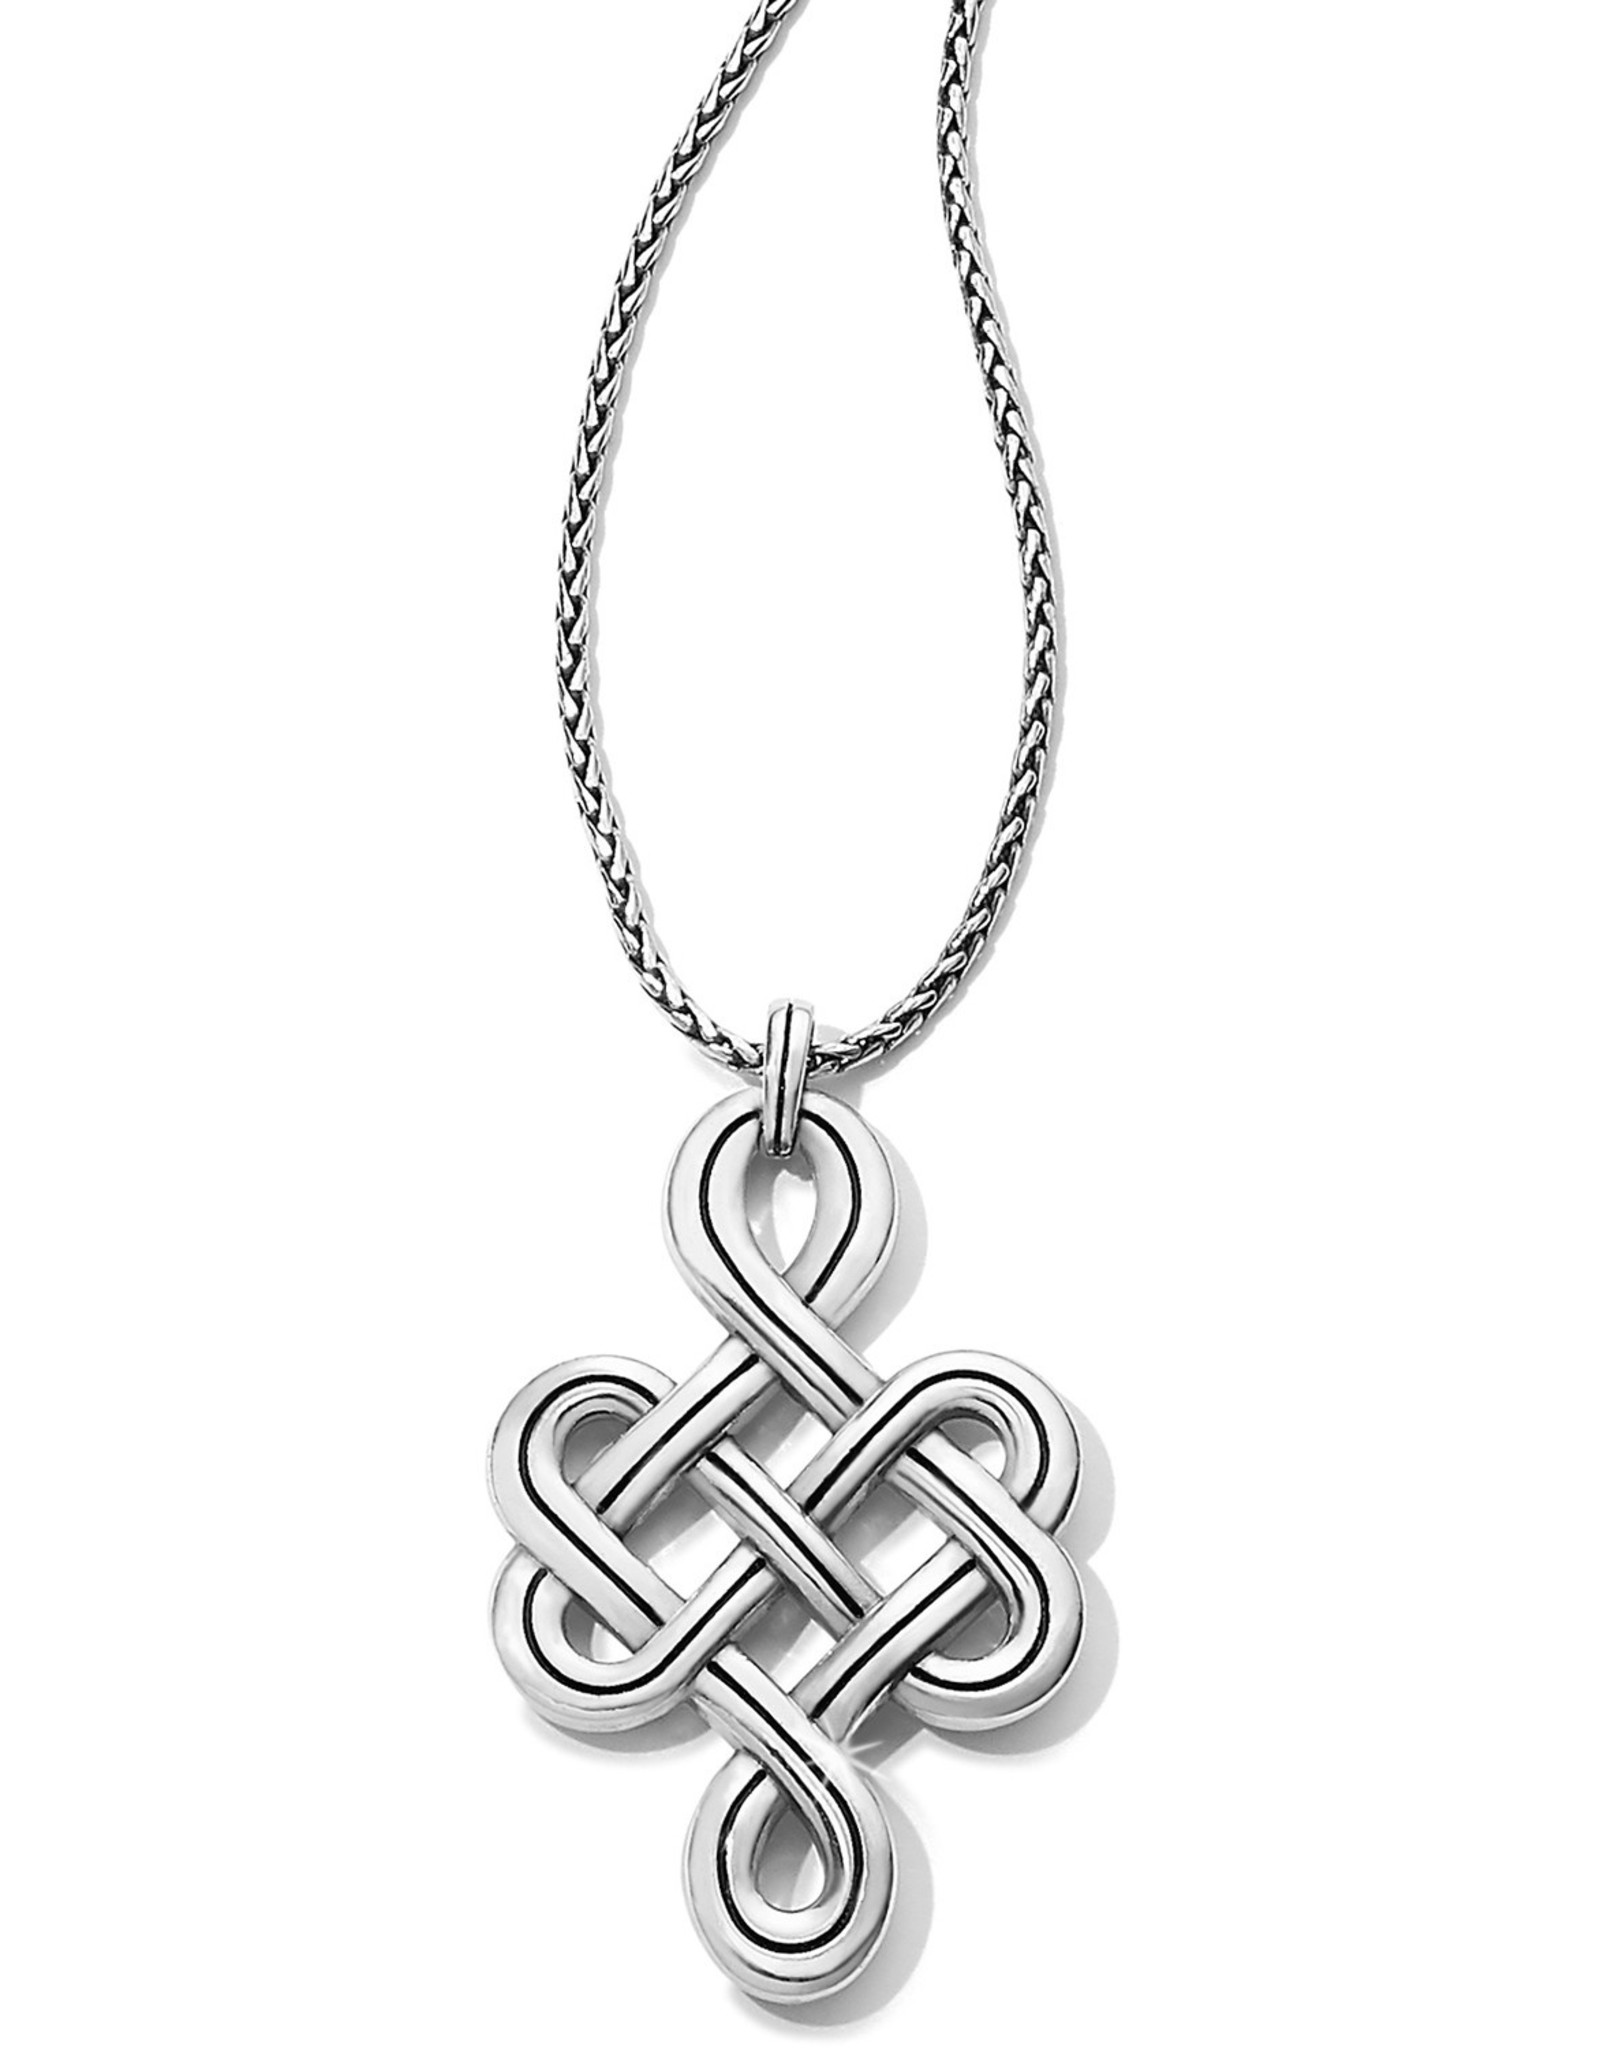 Brighton Brighton Necklace Interlok Endless Knot Convertible